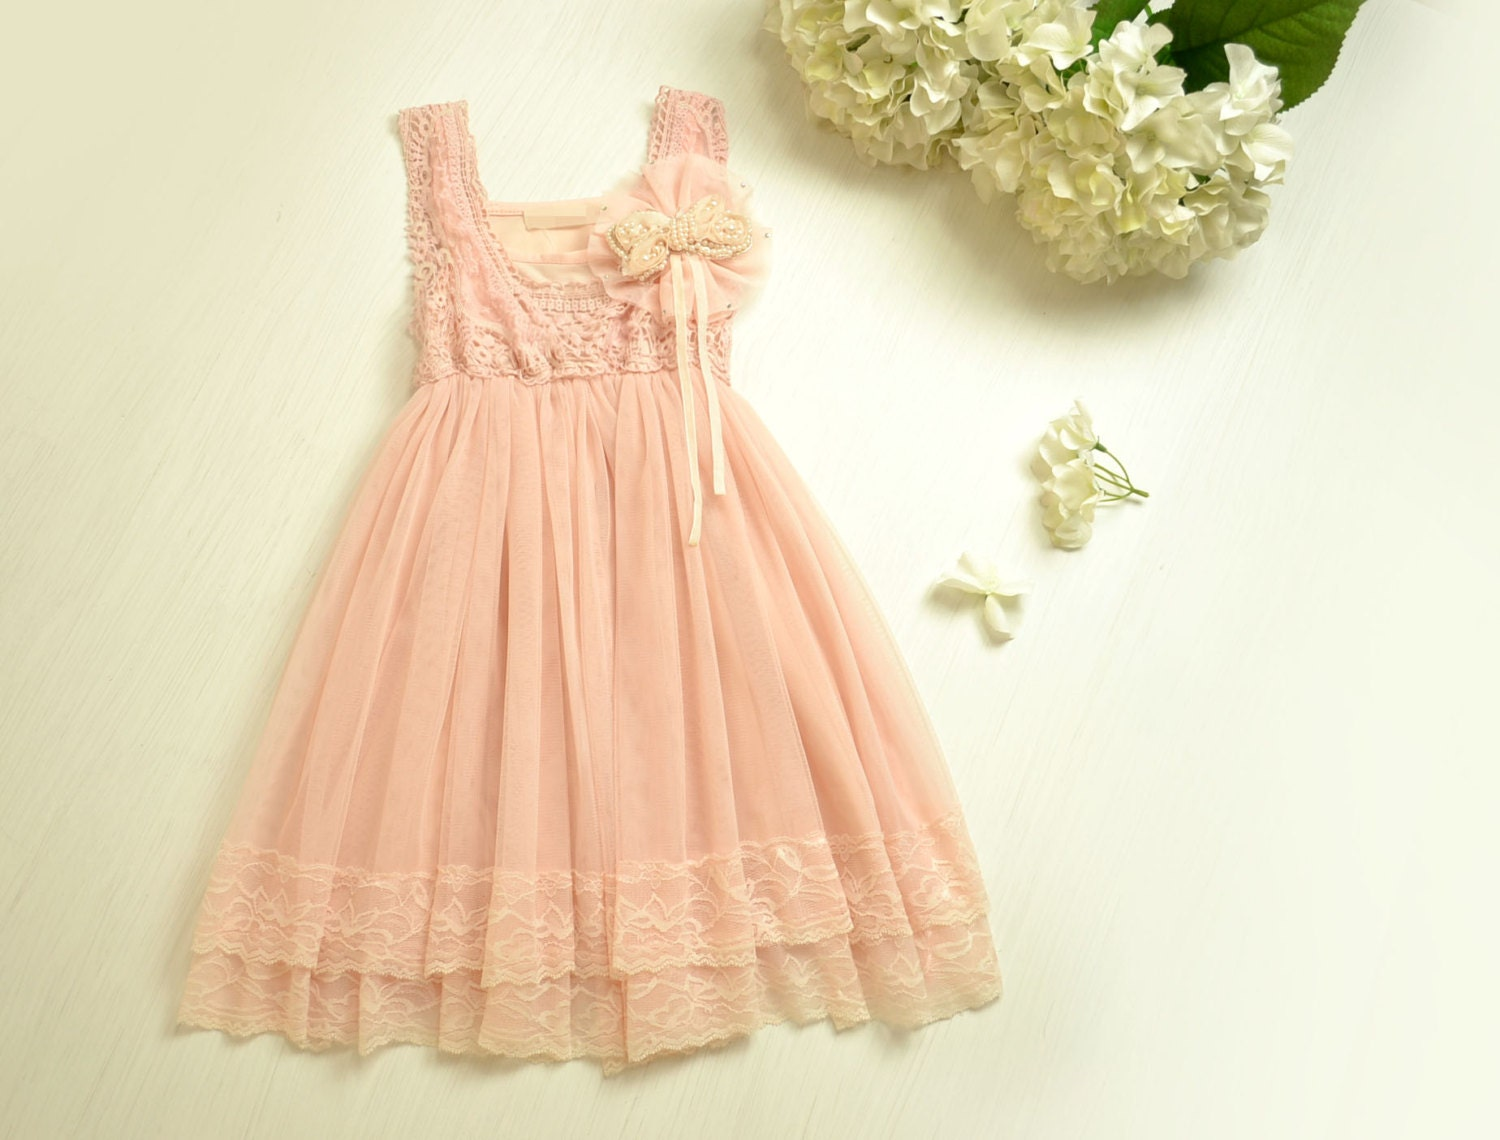 Vintage pink lace girls dress flower girl bridesmaid dress zoom ombrellifo Choice Image